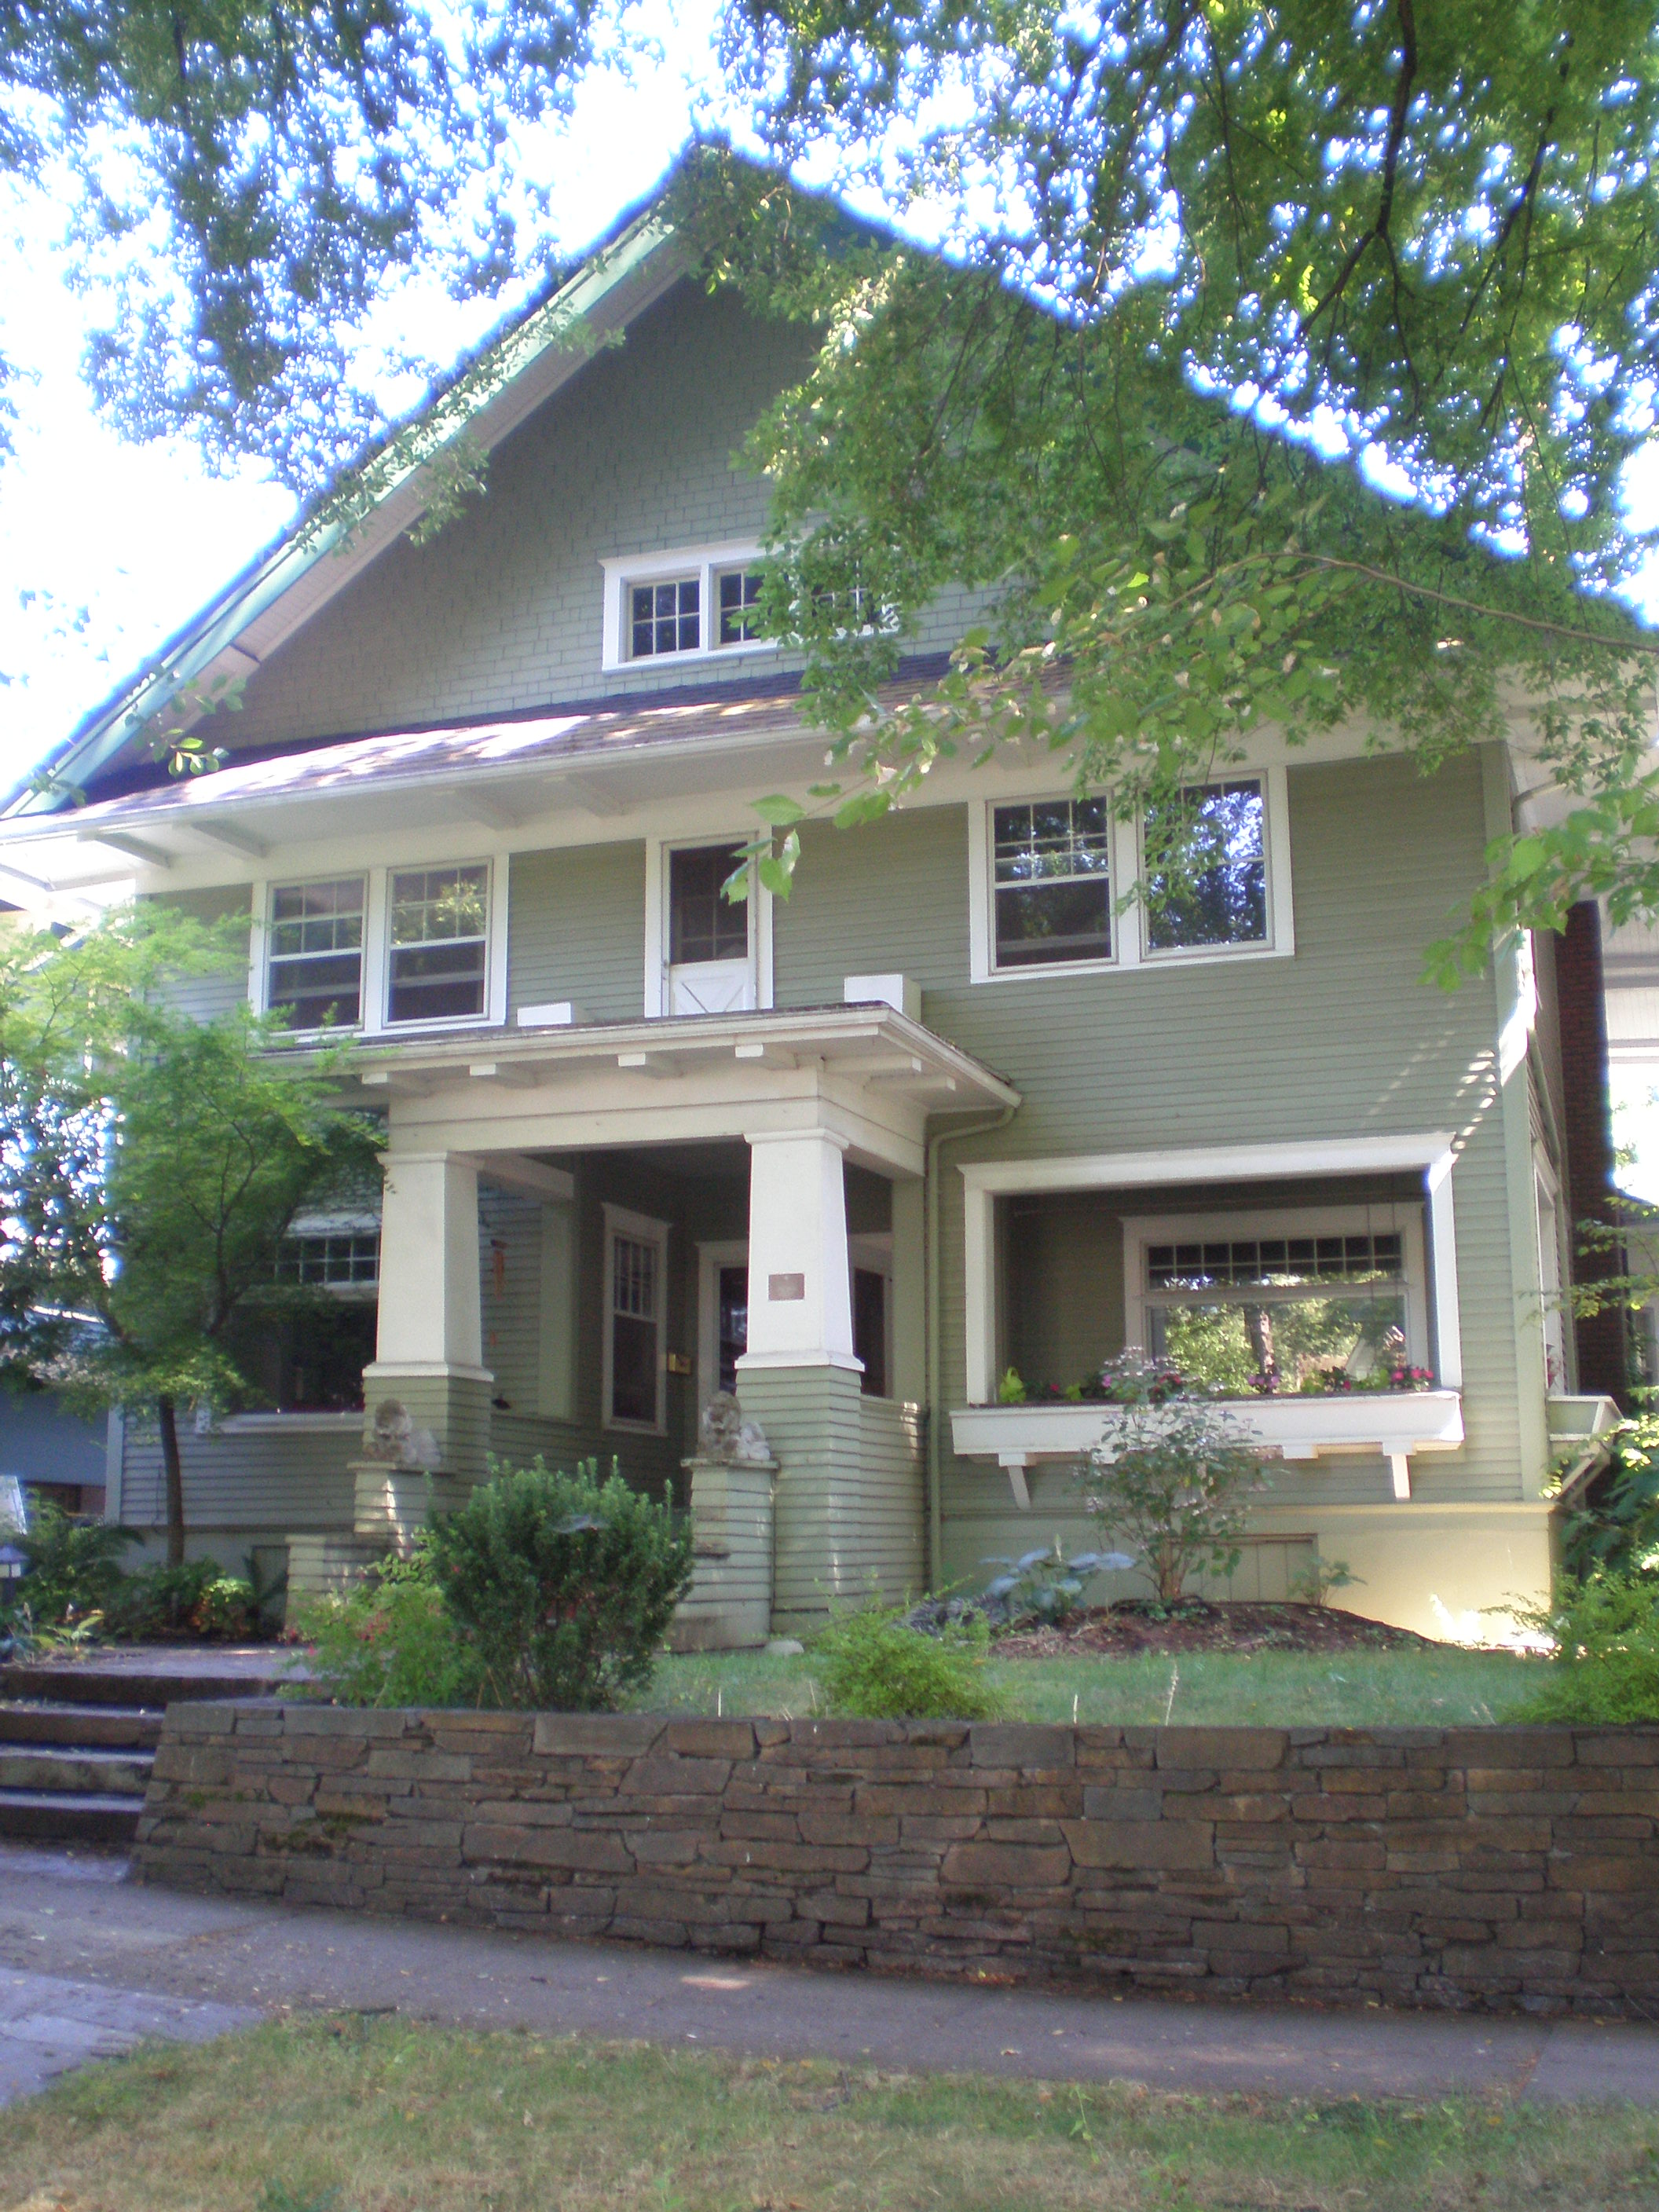 File rich house ladd 39 s addition portland oregon jpg for Picture of house